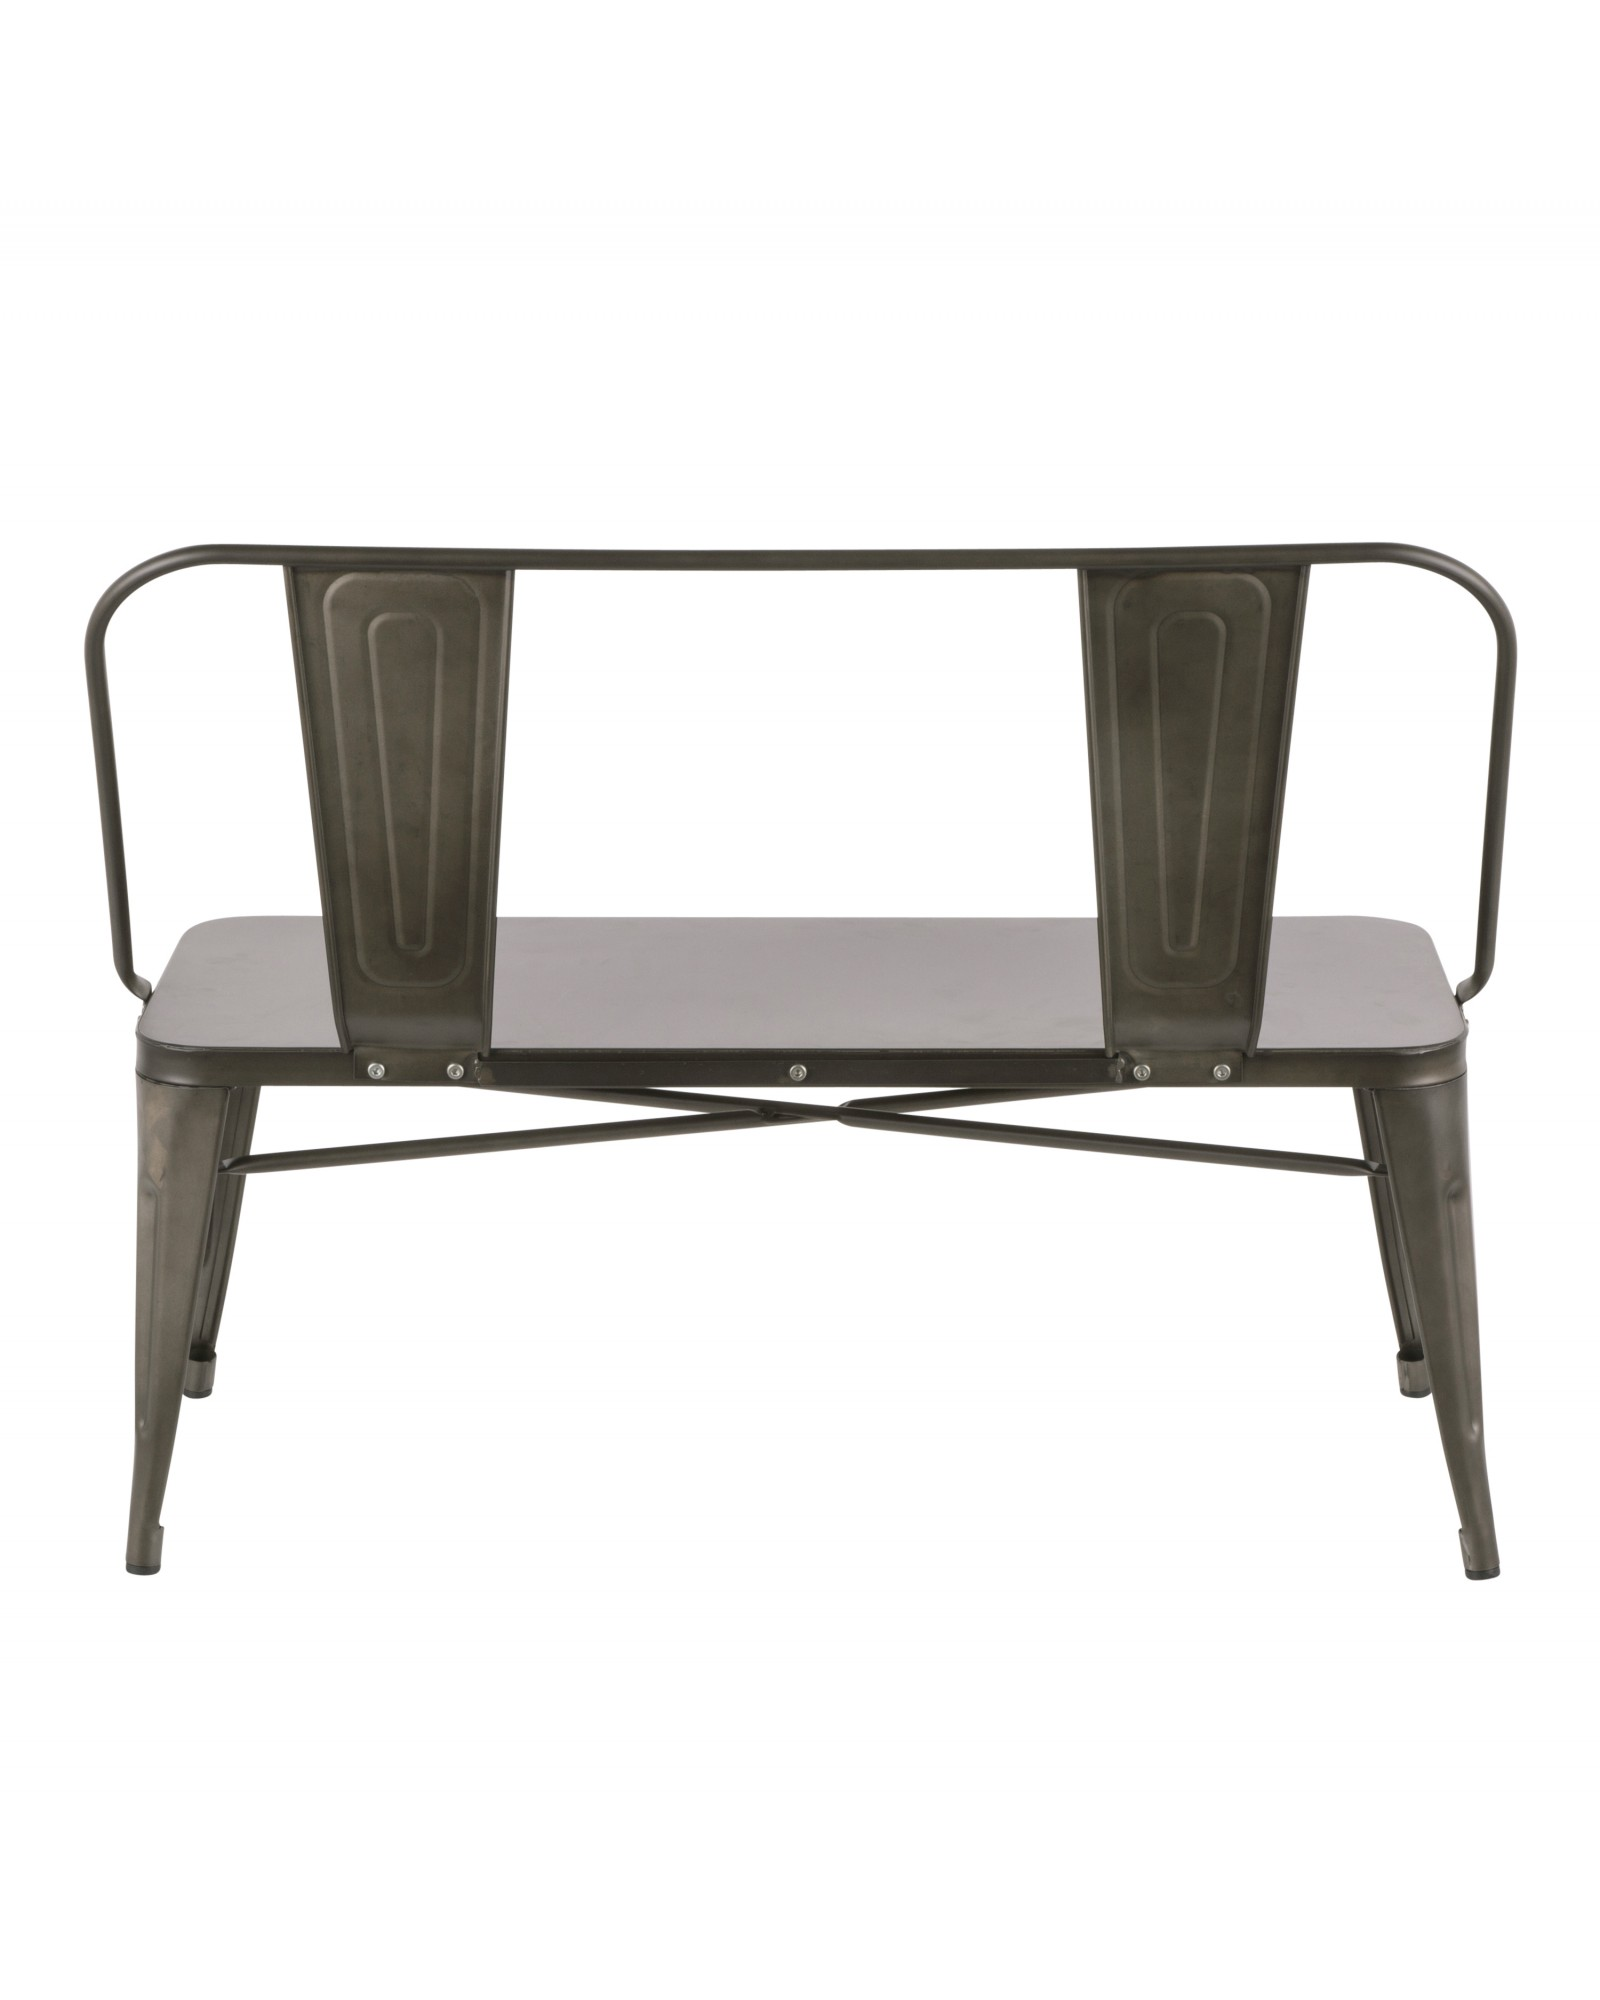 Oregon Industrial Metal Dining/Entryway Bench with Antique Finish